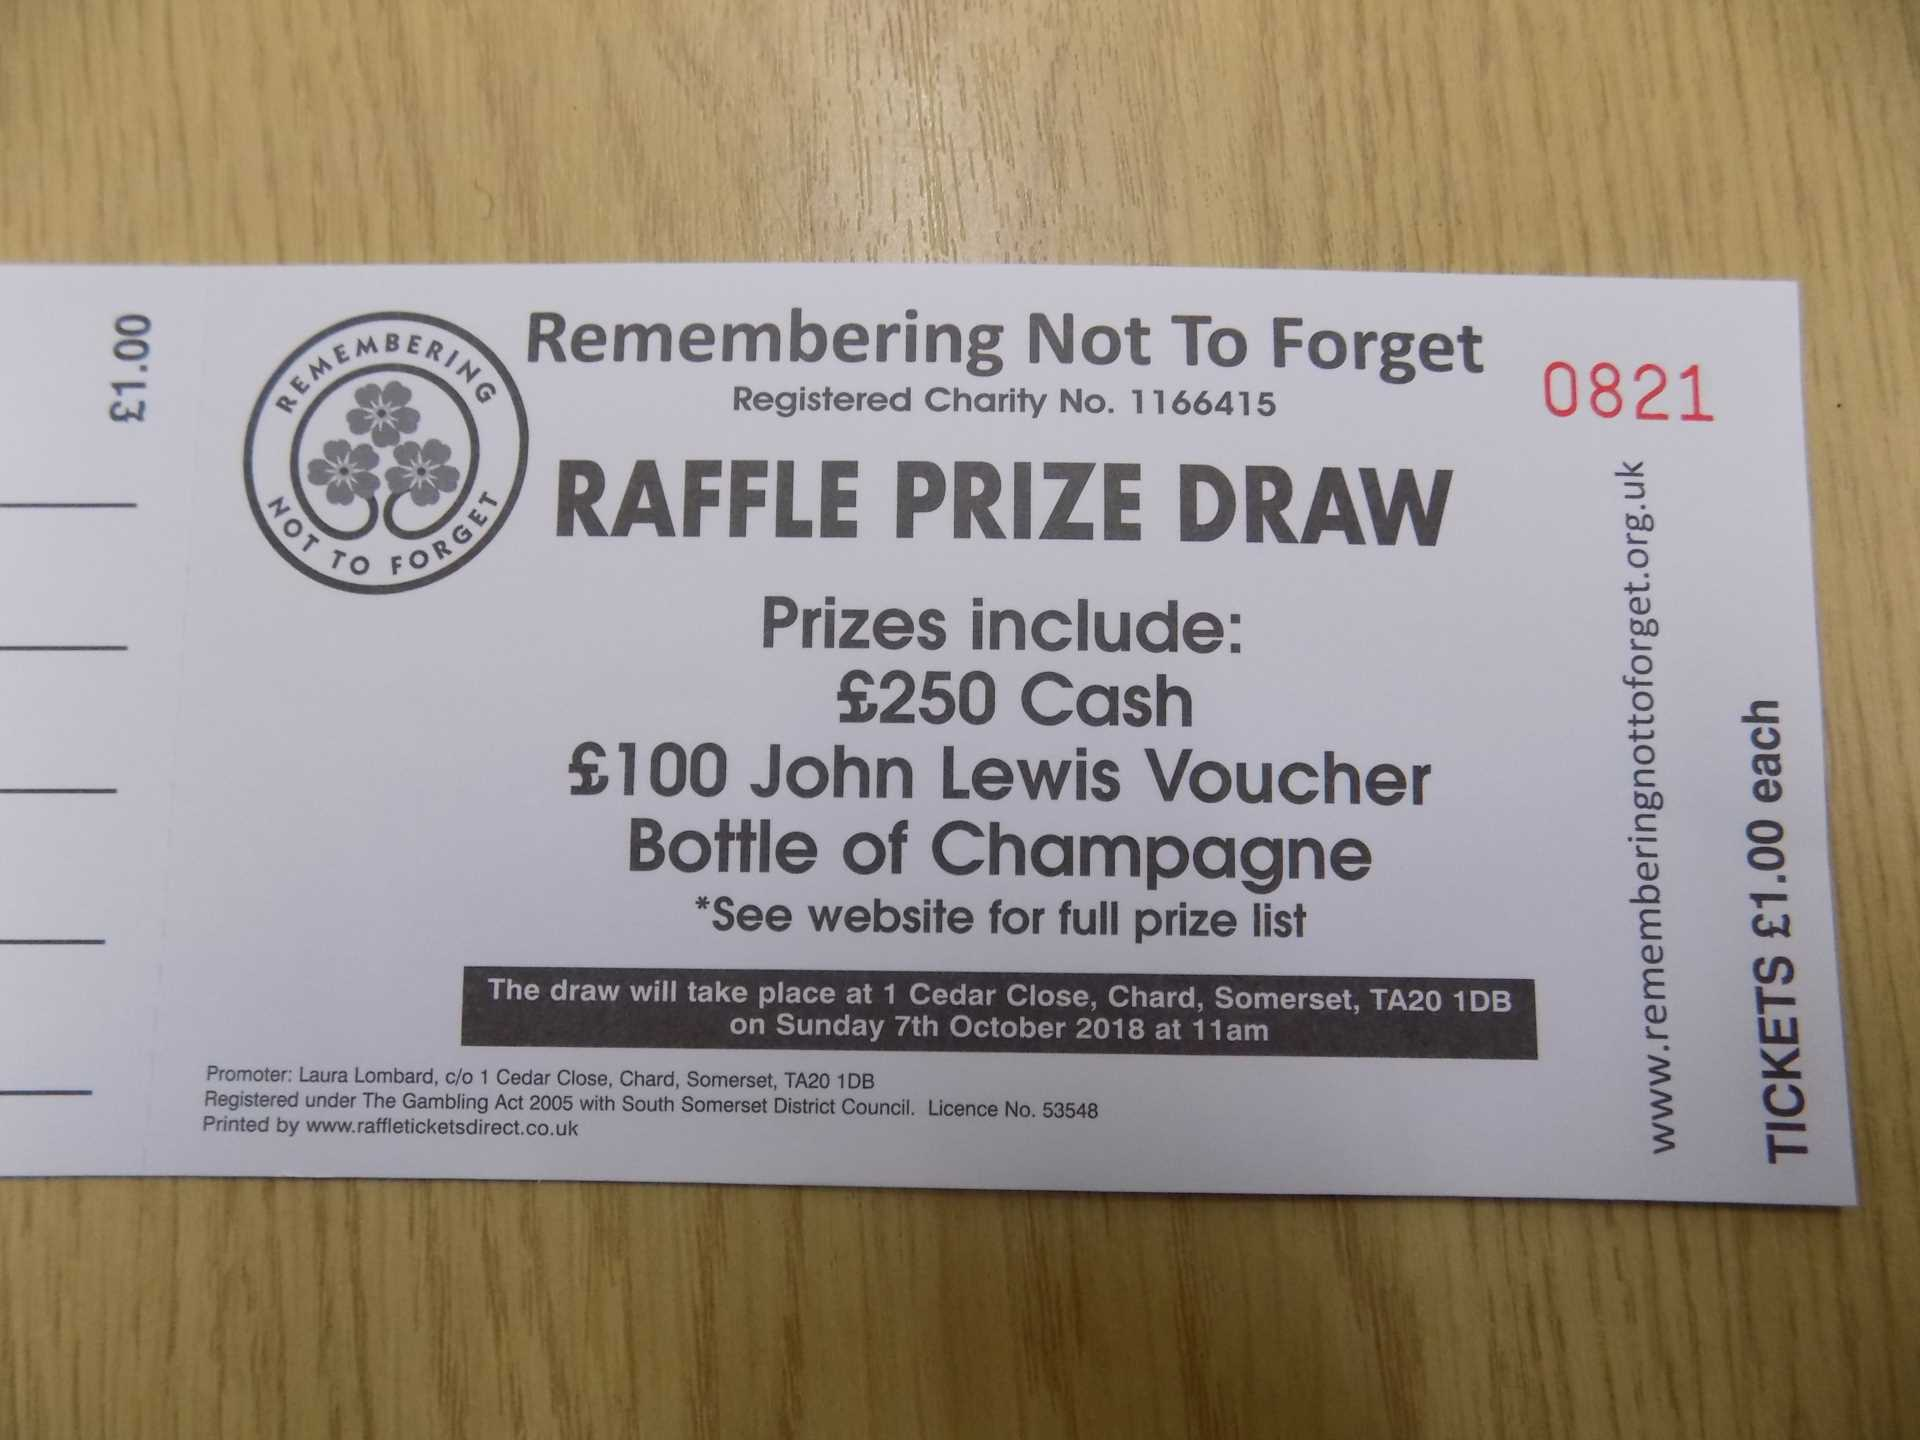 Remembering Not To Forget - Raffle Prize Draw.